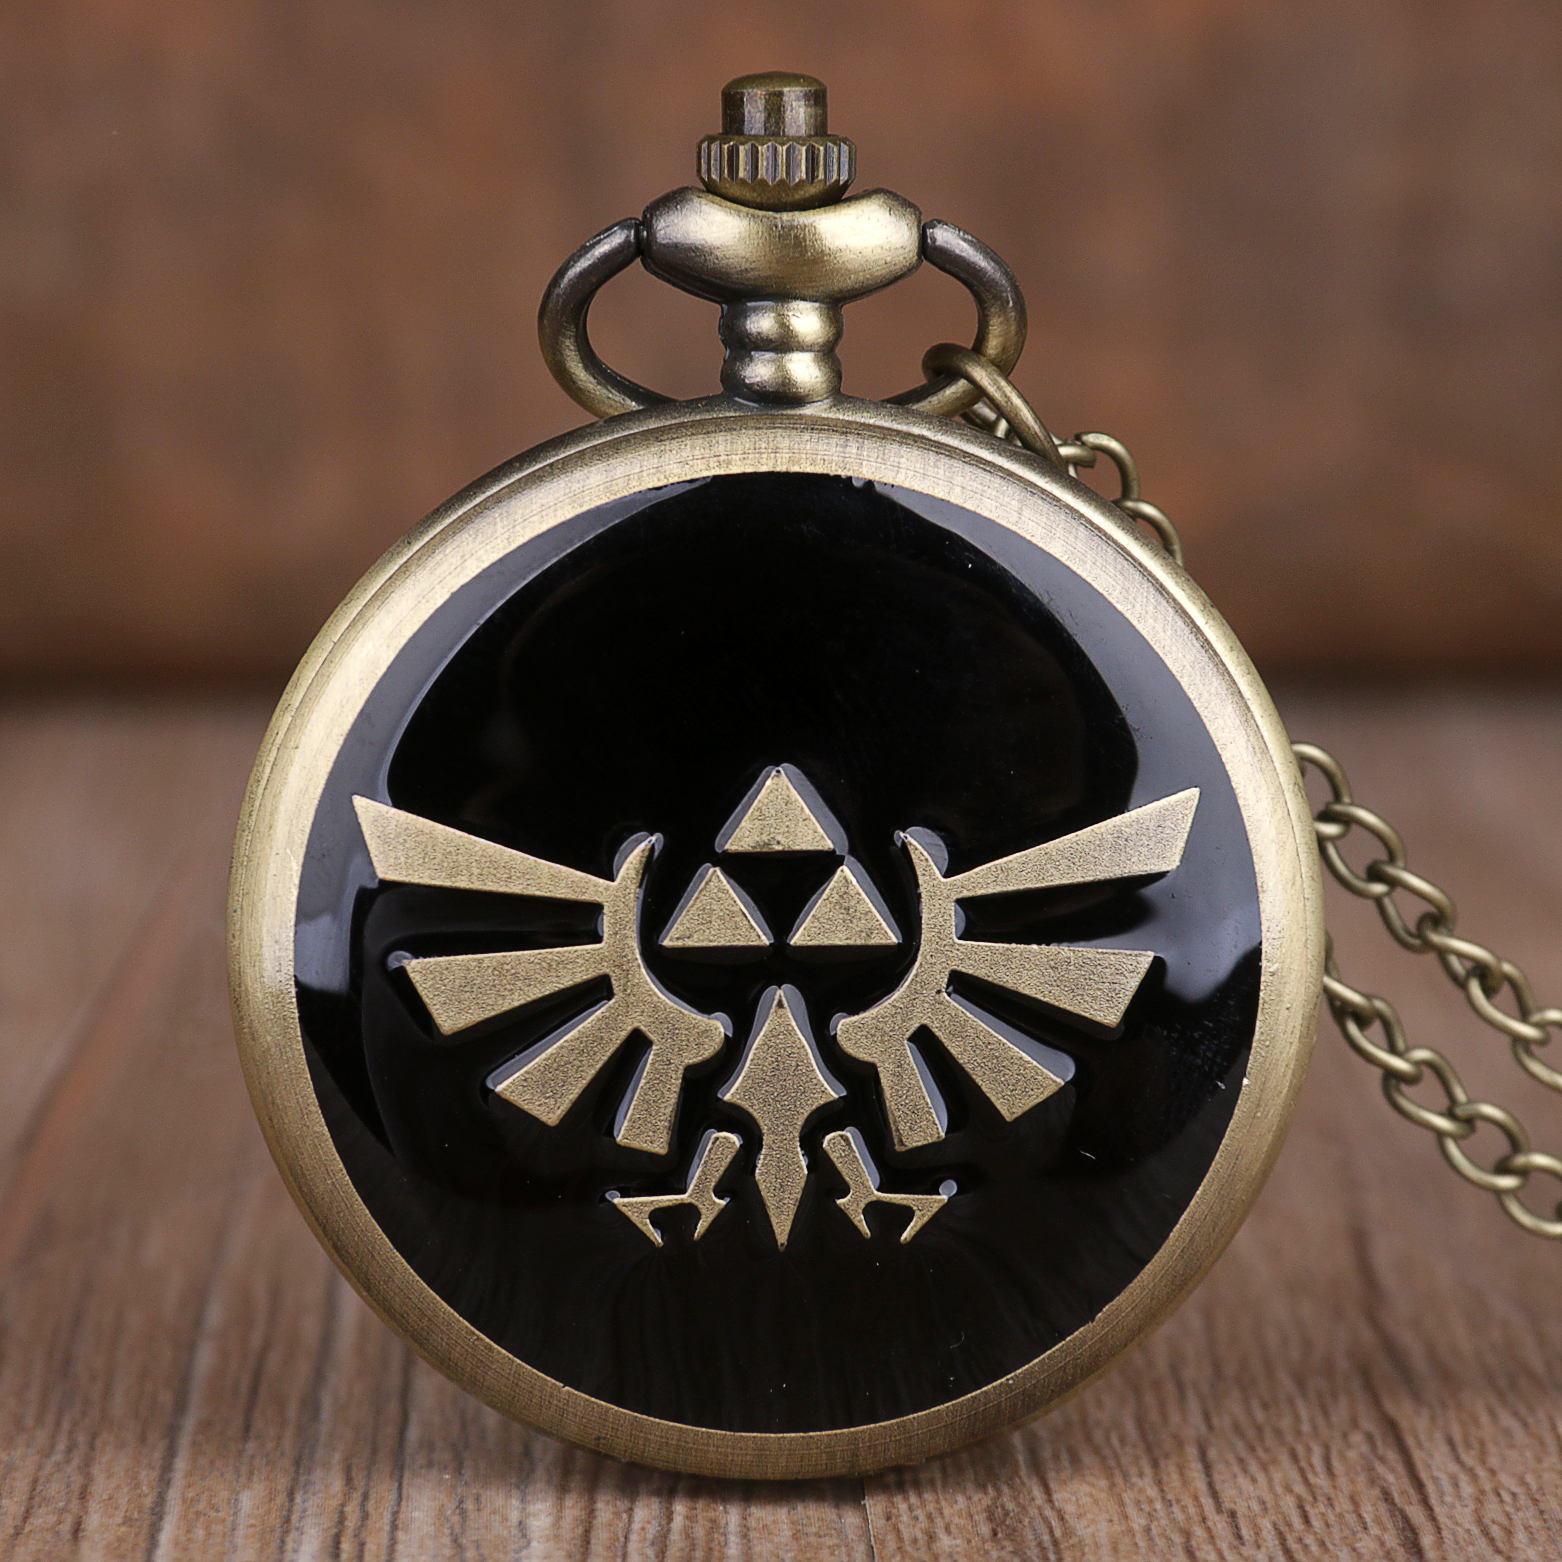 New Game Sword Theme Bronze Quartz Pocket Watches Analog Pendant Necklace Chain Pocket Watches Mens Womens Gifts